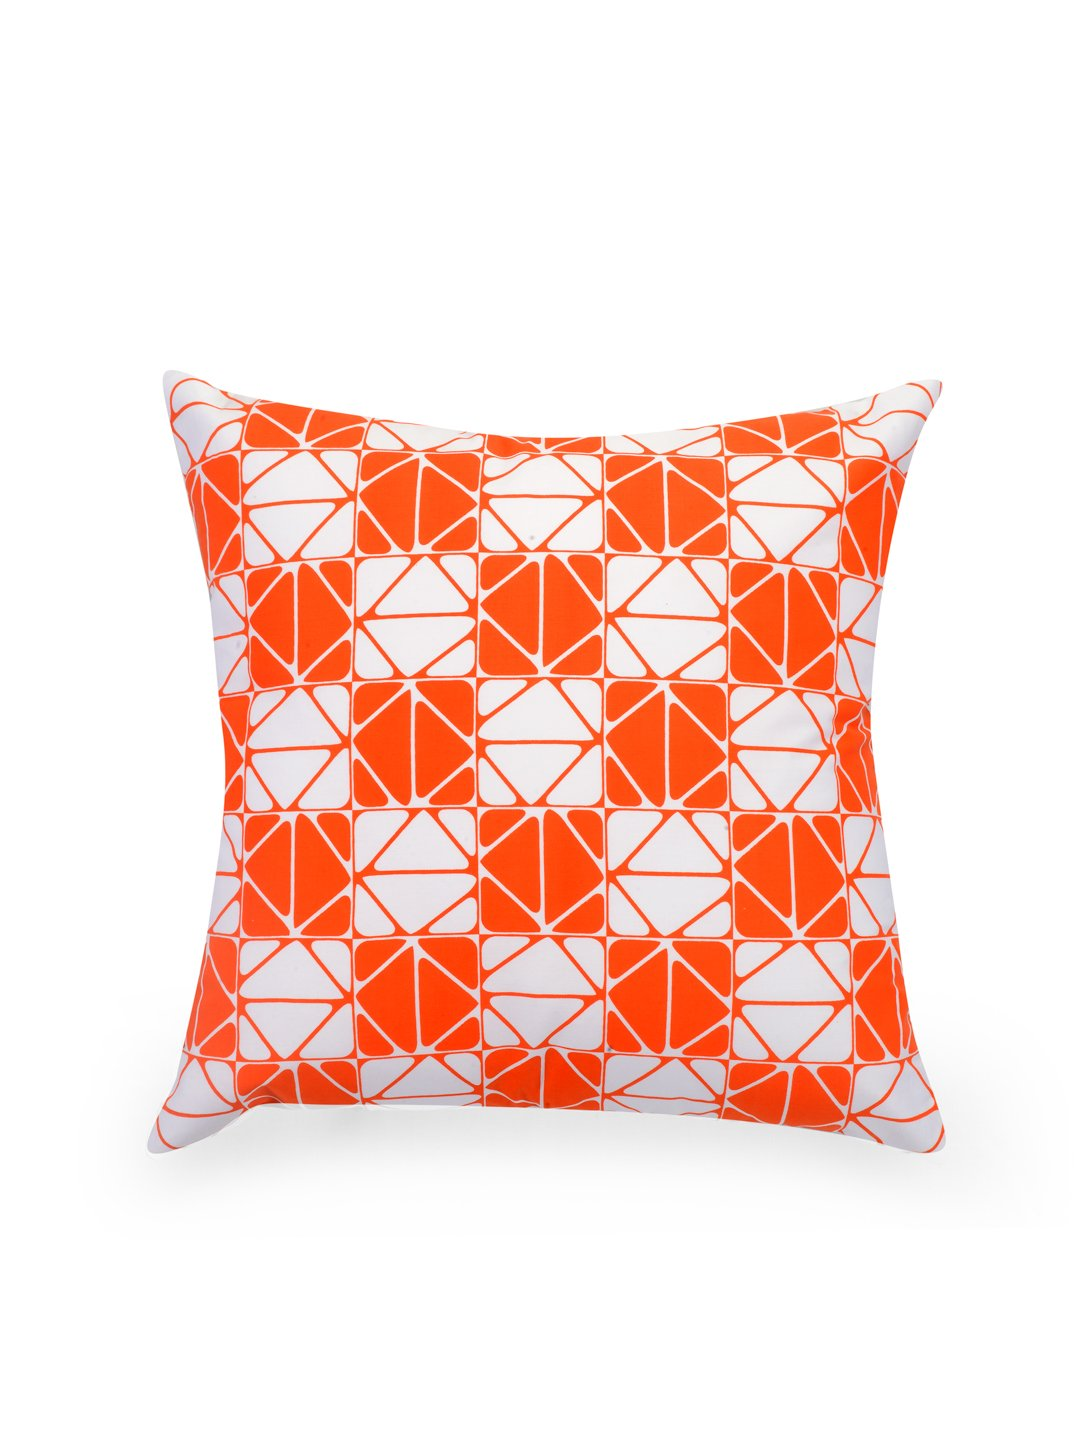 Hand-painted Tangerine Delight Cushion Covers (Set of 5) - RANGRAGE - 6